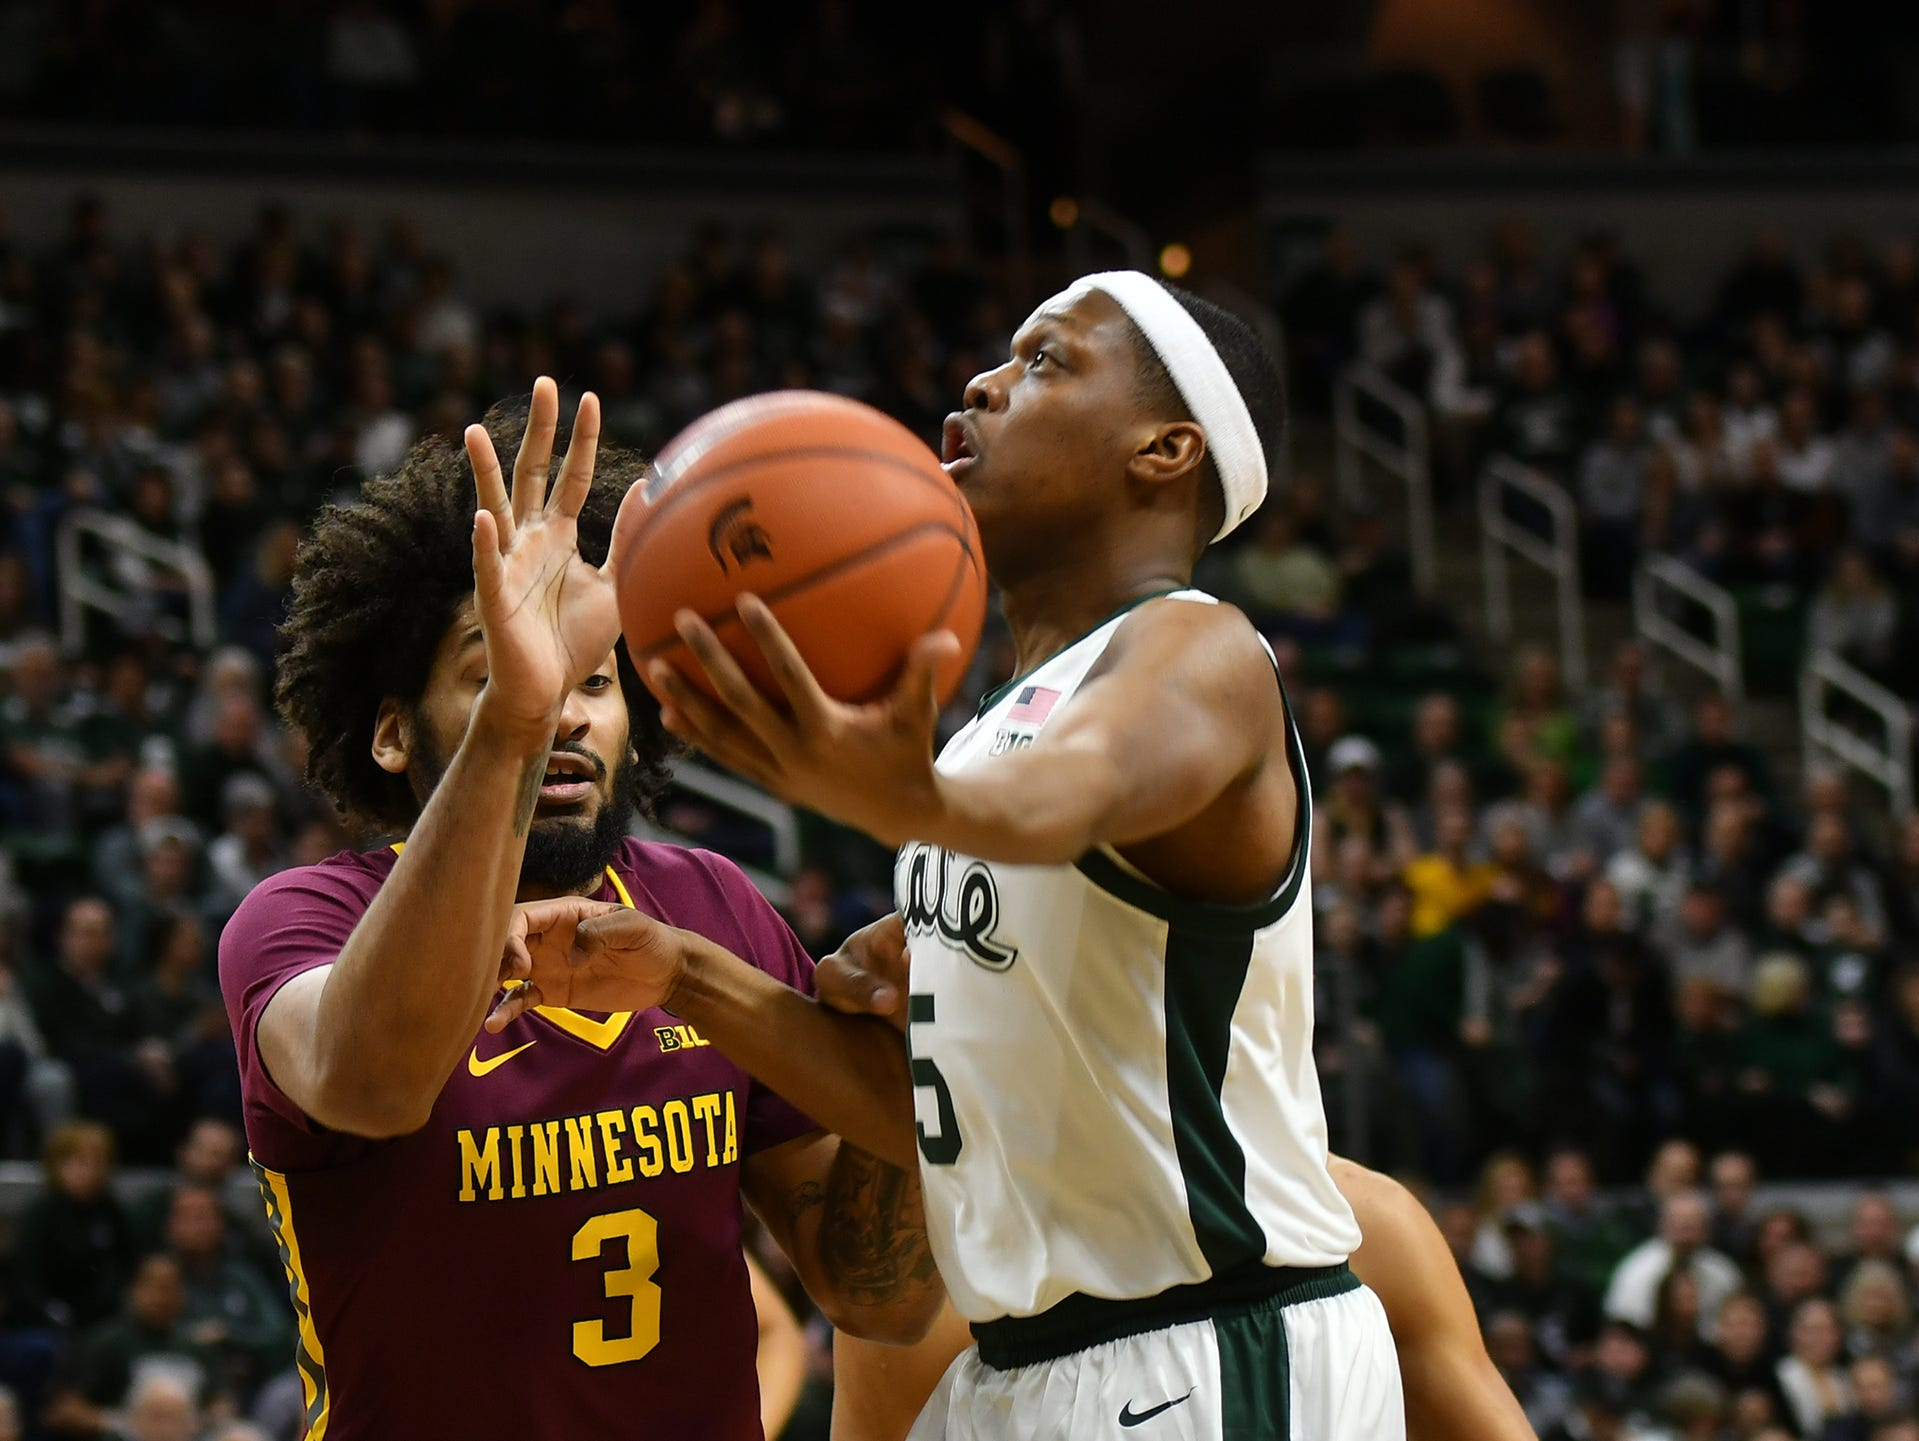 MSU's Cassius Winston (5) drives to the basket as Minnesota's Jordan Murphy (3) defends Saturday, Feb. 9, 2019.